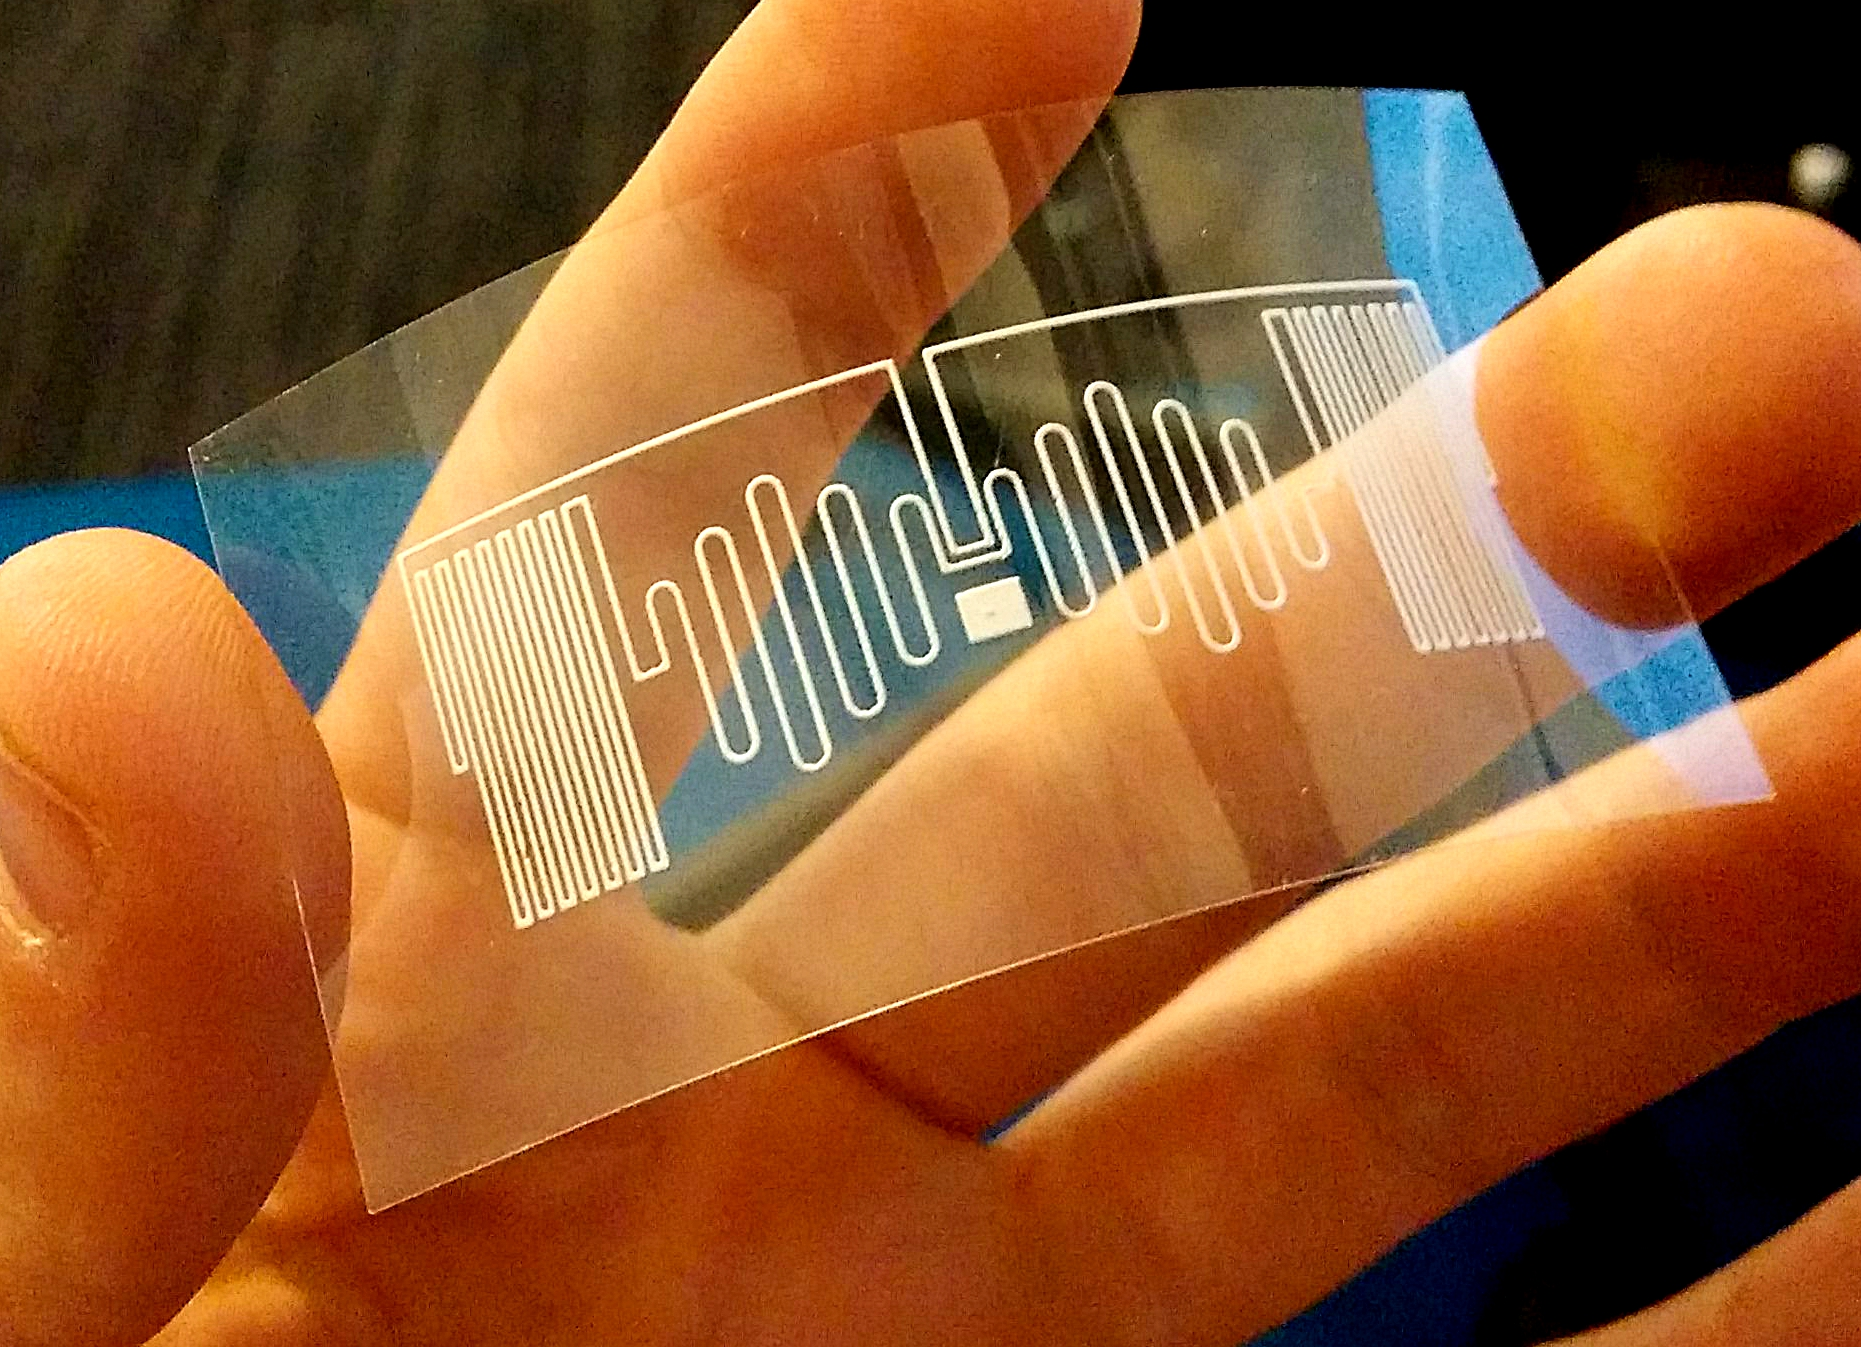 Printing on flexible material